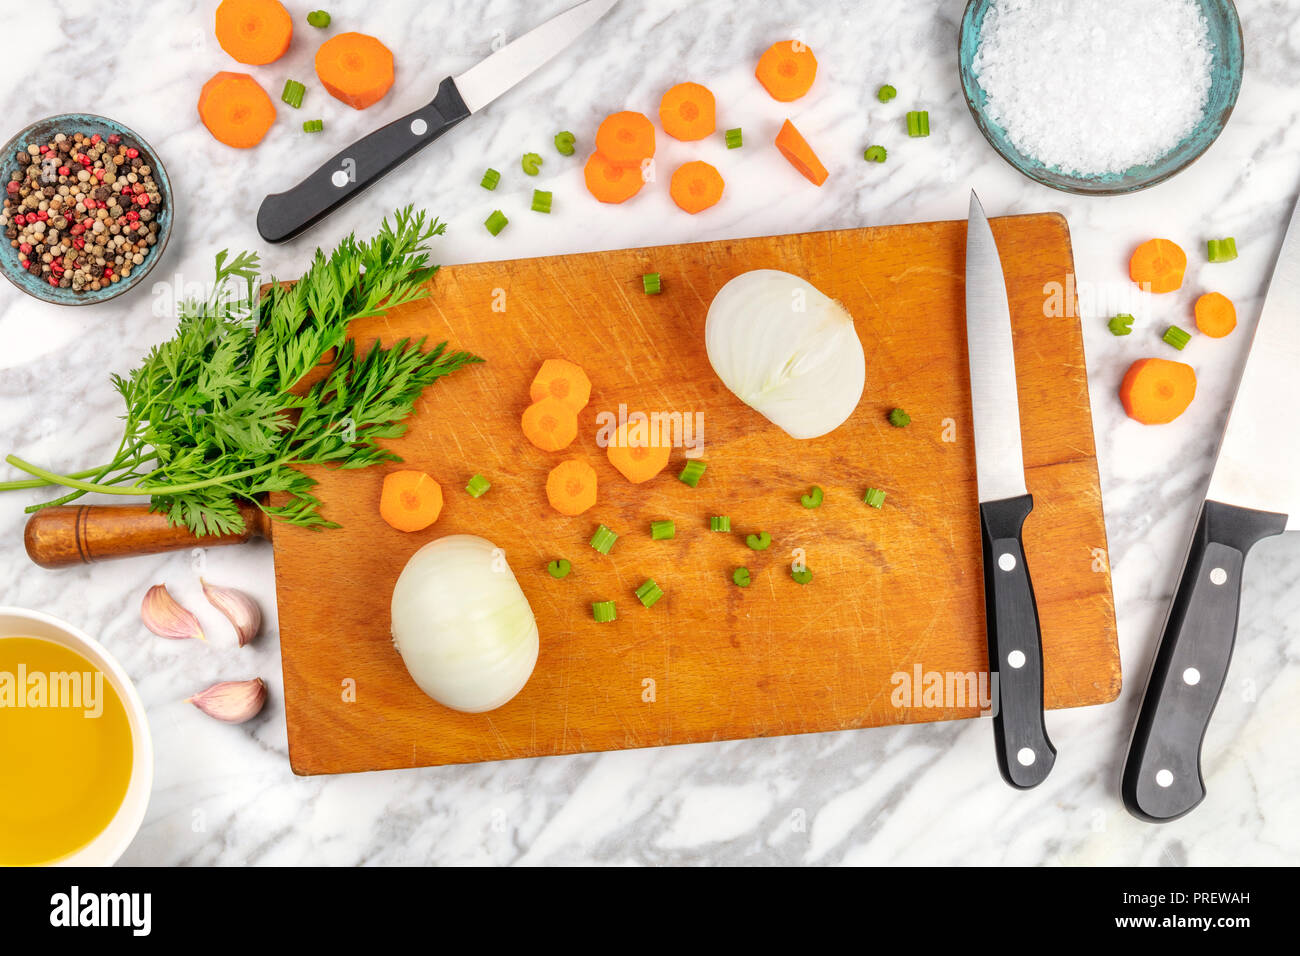 Prep time, or mise en place. An overhead photo of professional chef's knives, shot from above on a cutting board, with chopped vegetables and spices, on a marble cooking surface - Stock Image